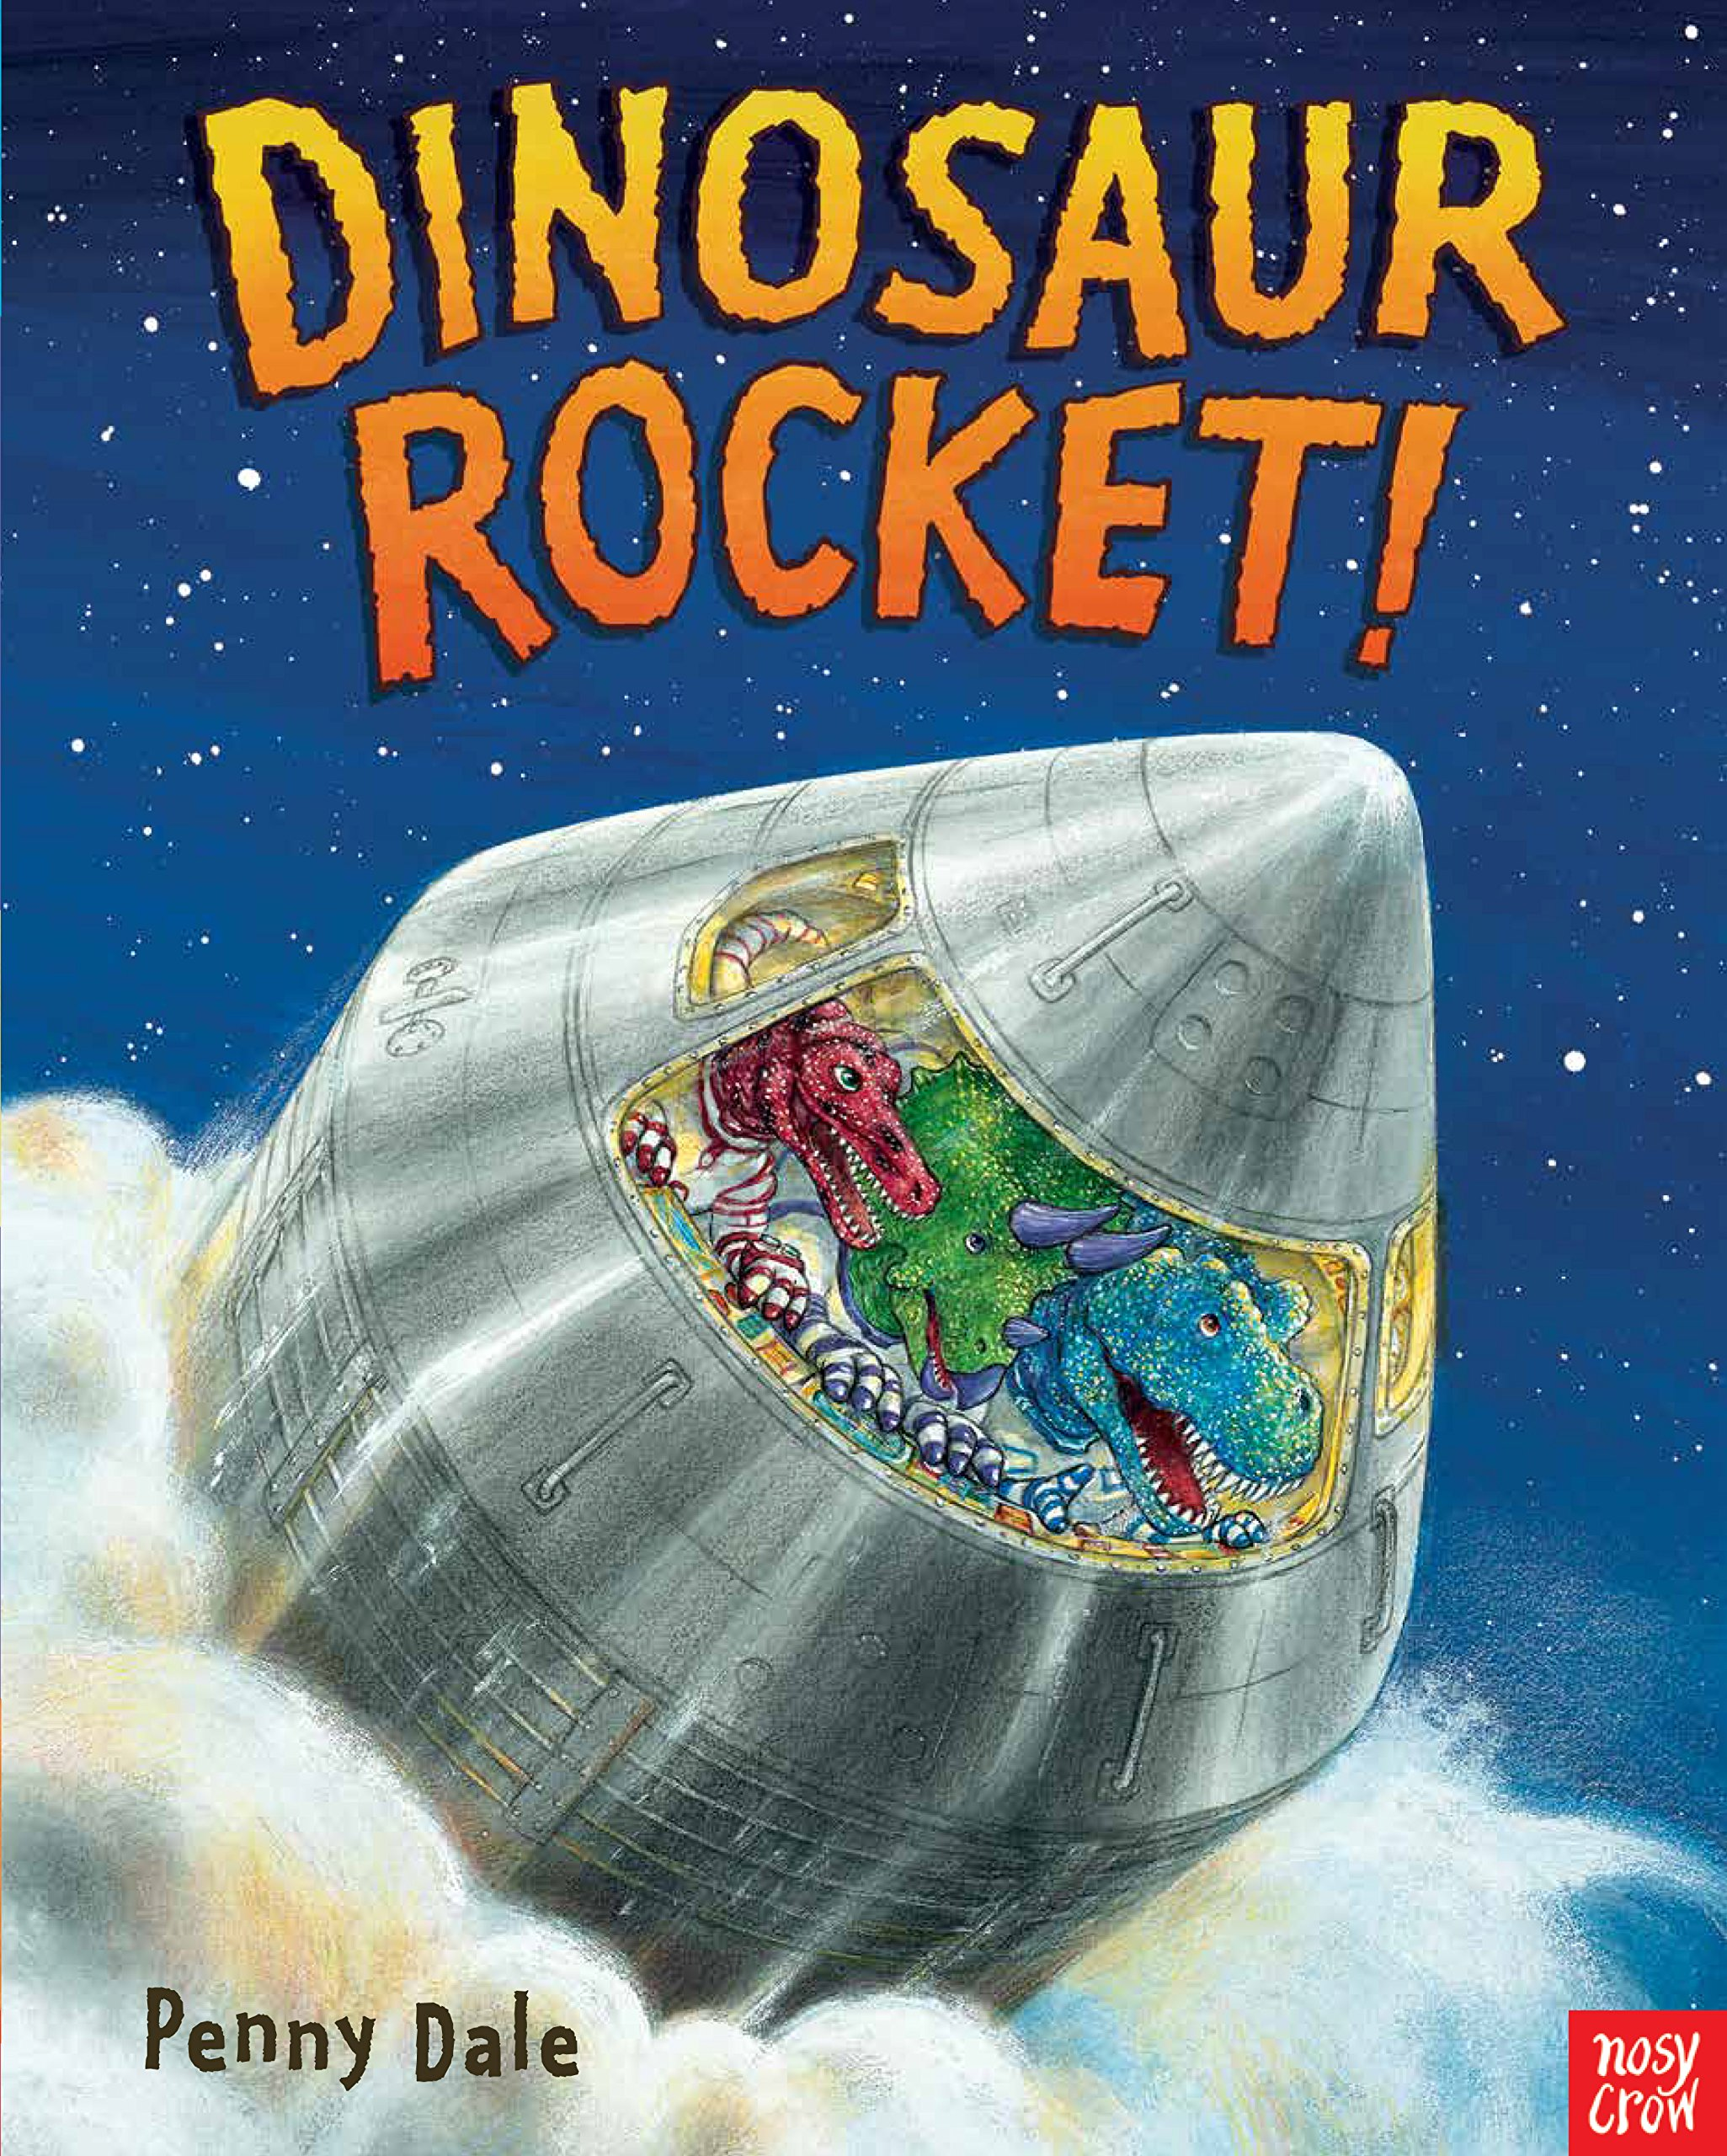 space rocket book - photo #9